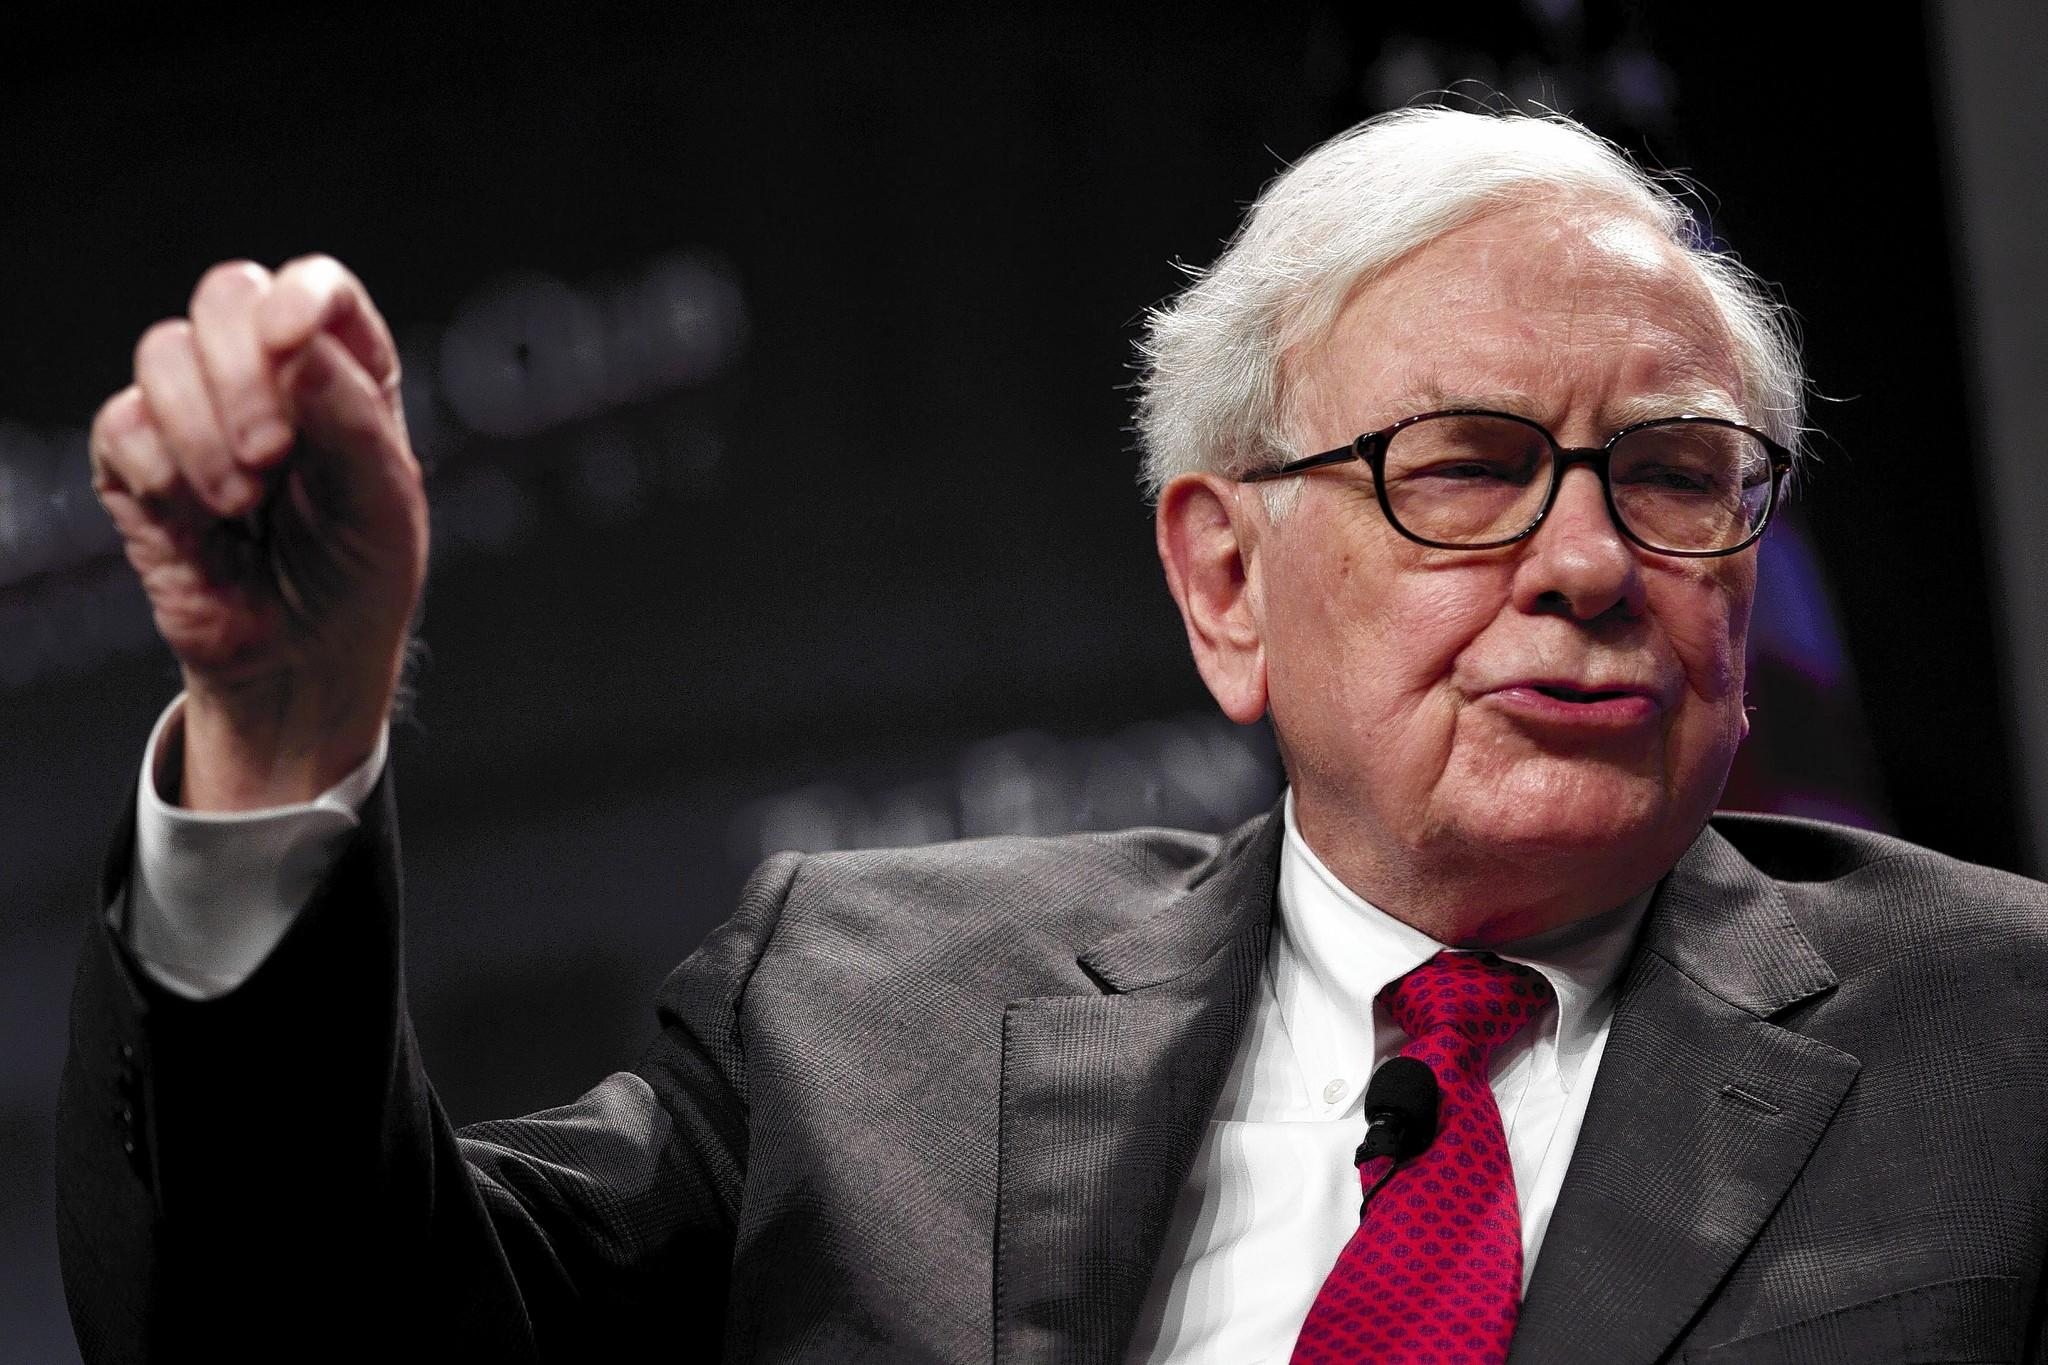 Berkshire Hathaway Chief Executive Warren Buffett said the idea for the March Madness contest with a $1-billion prize was his. Above, Buffett in June 2012.